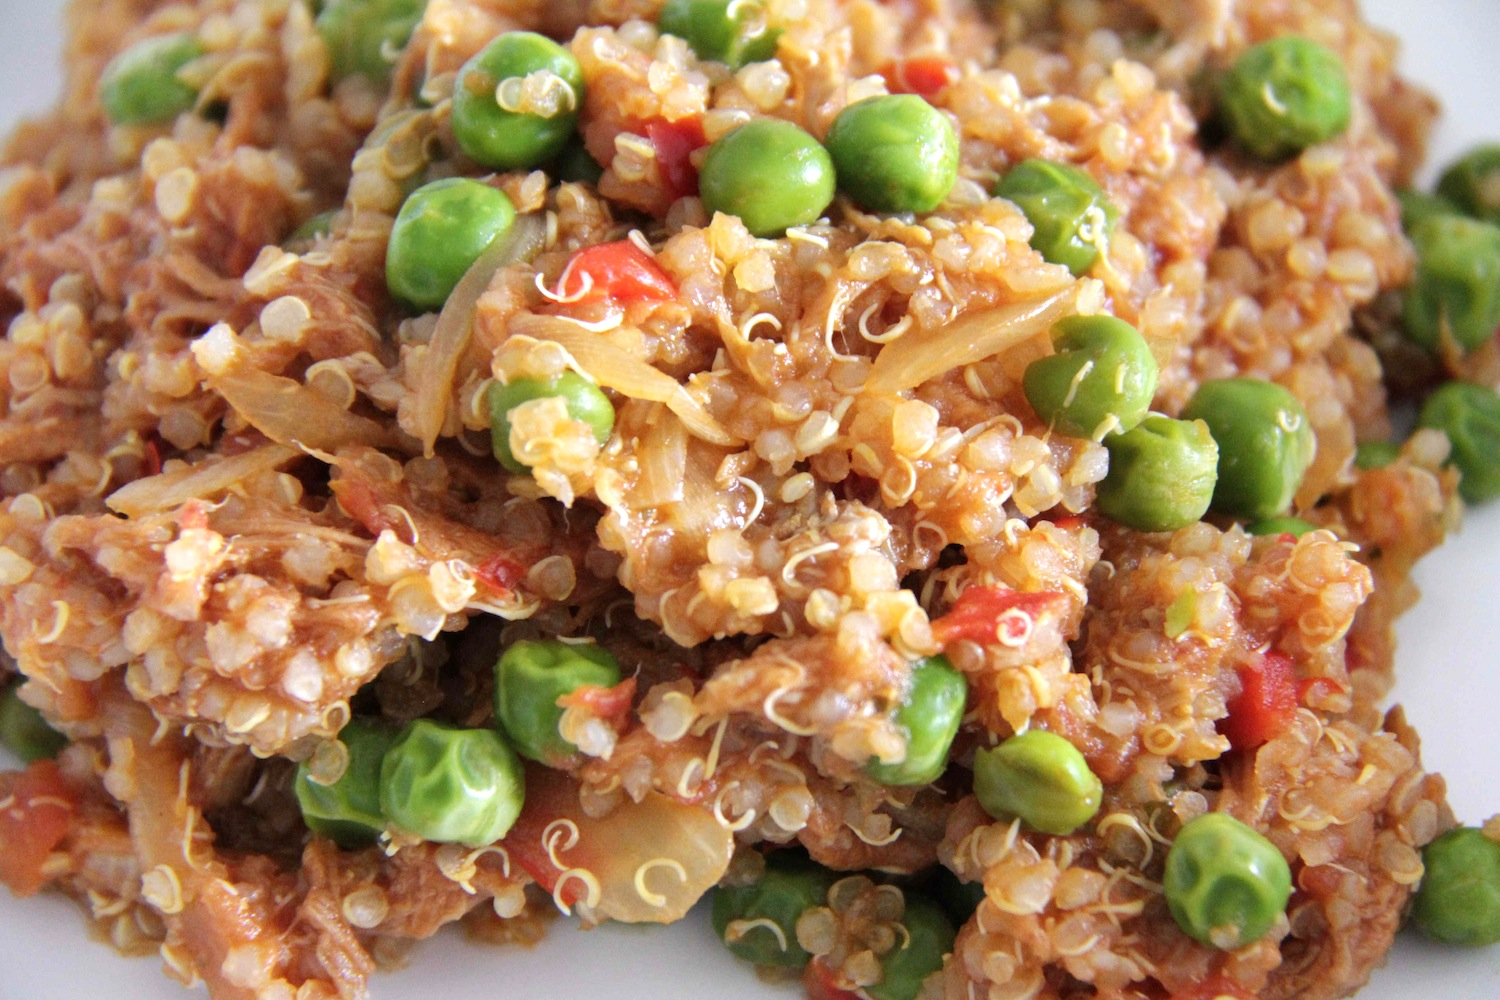 Pork ragu with quinoa, peas and red capsicum